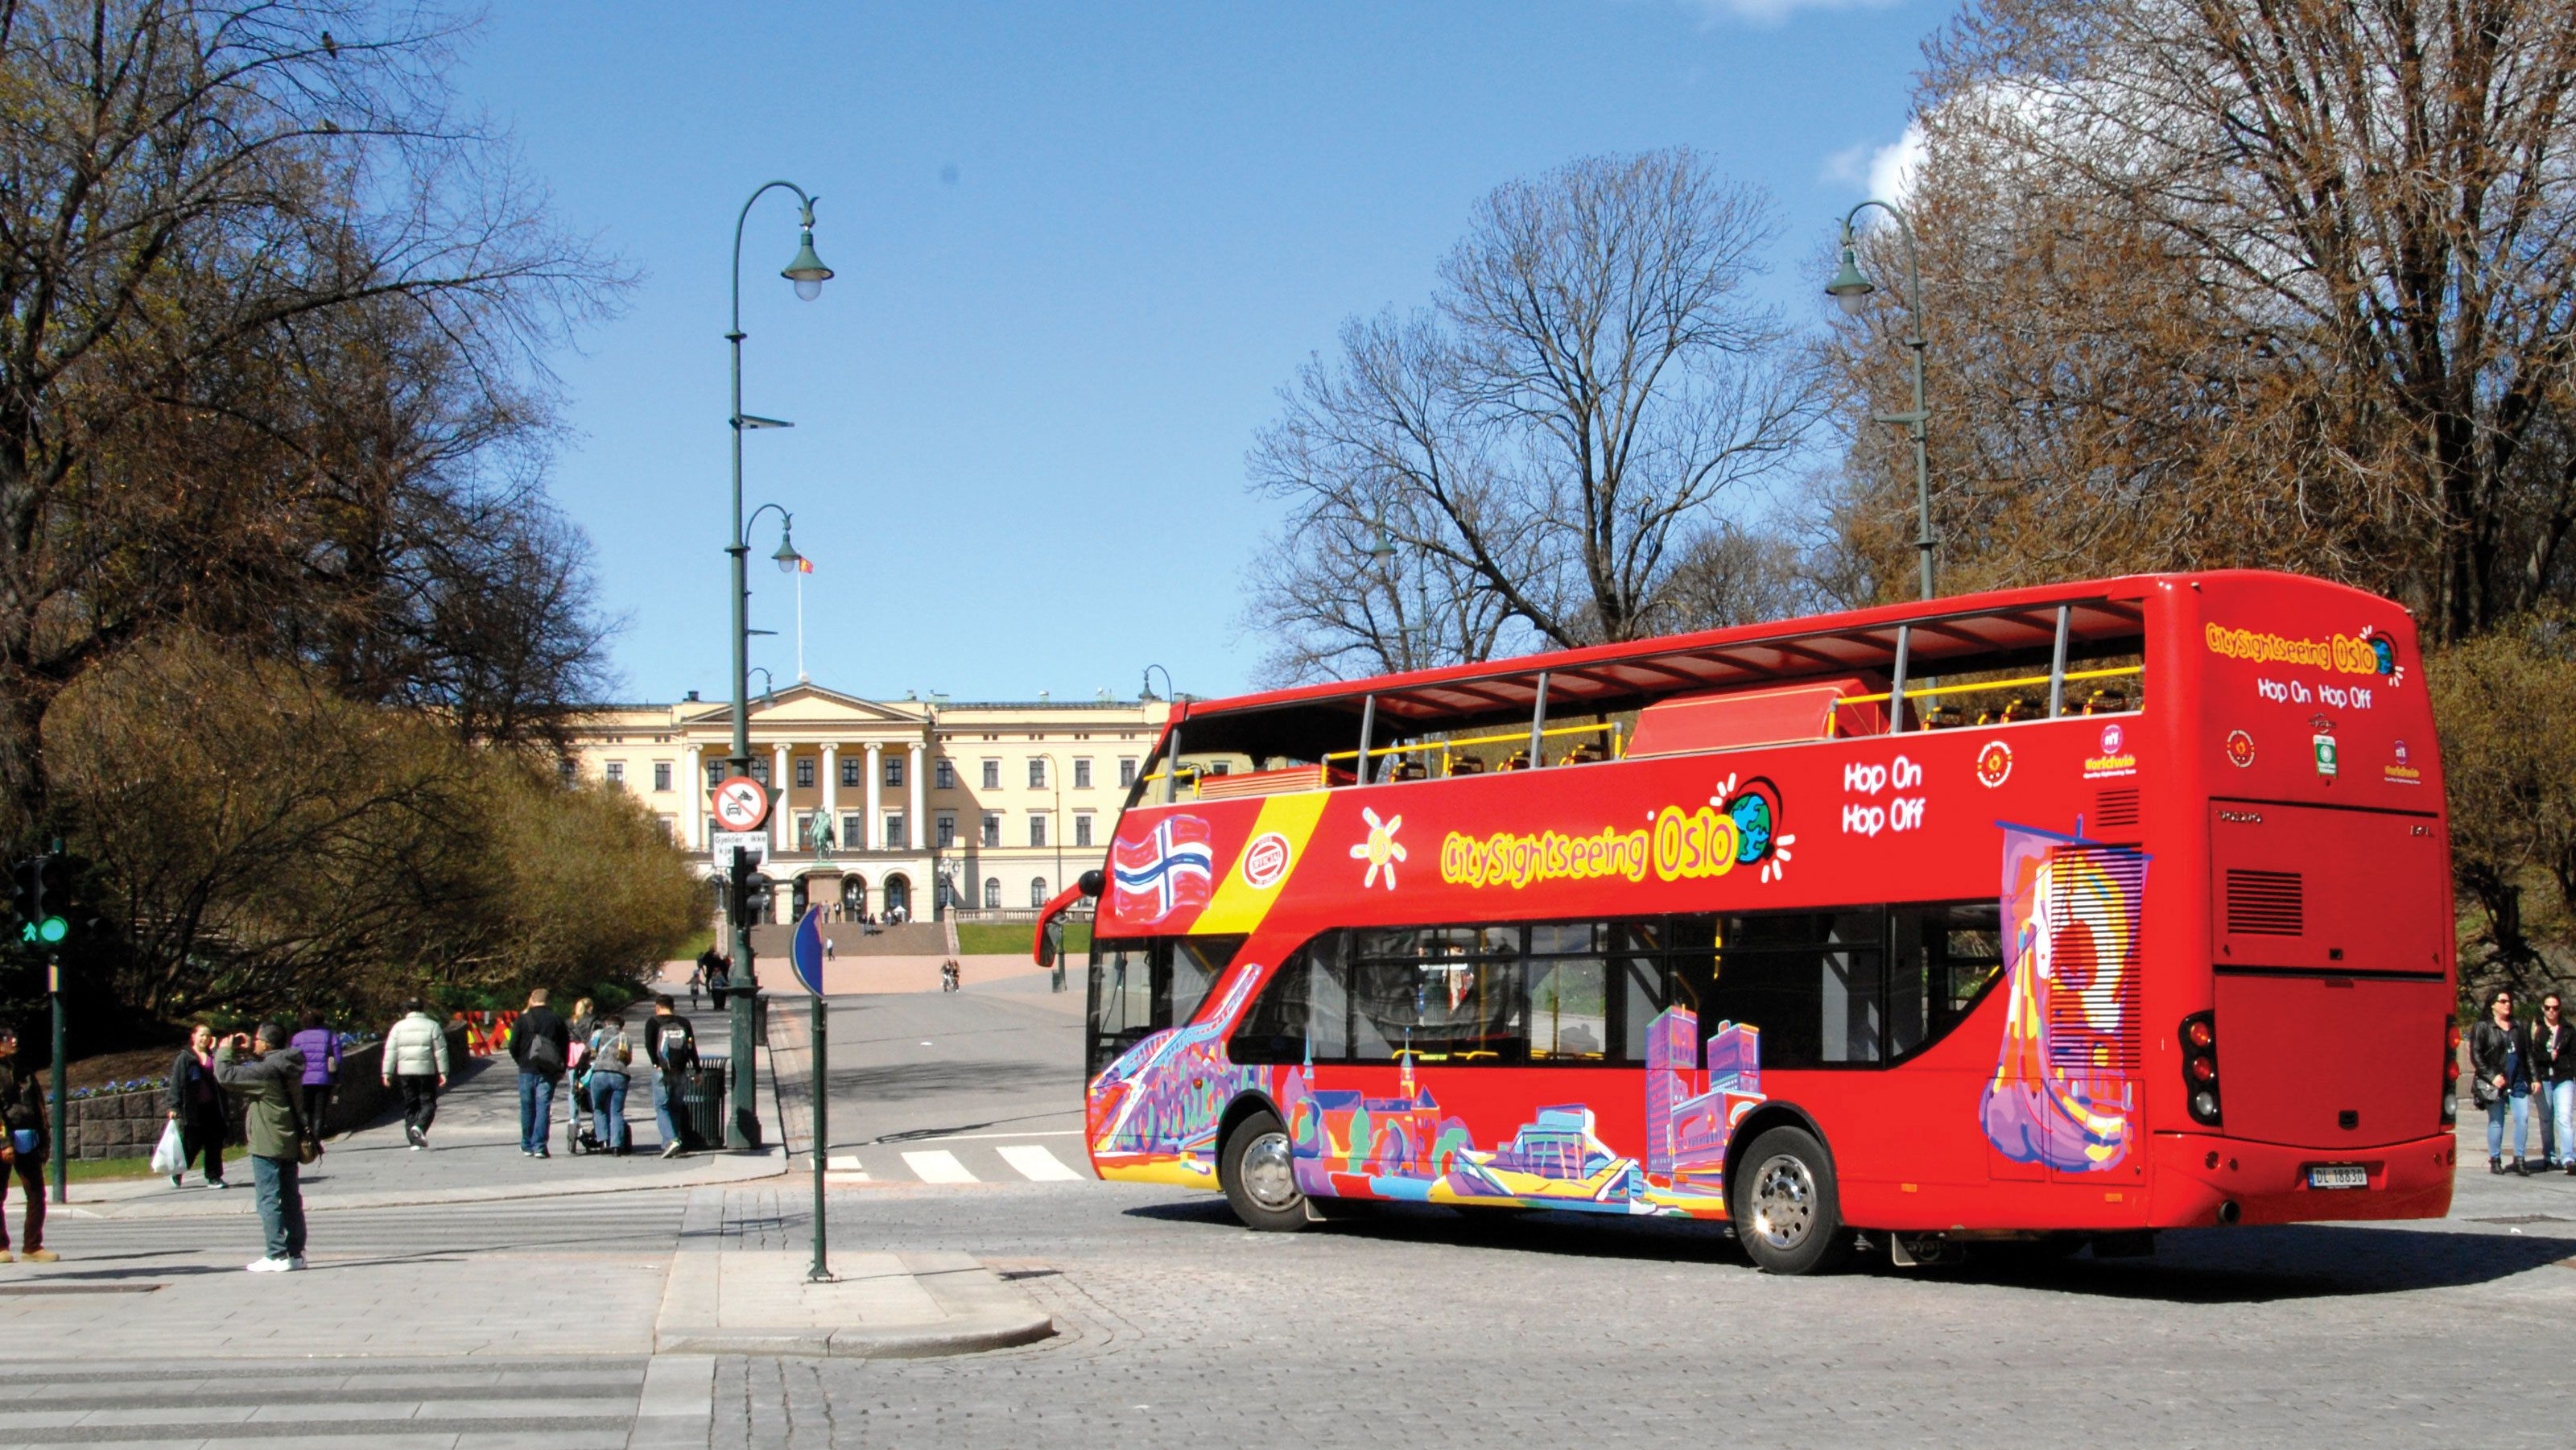 Sightseeingbusstur med hop-on/hop-off i Oslo